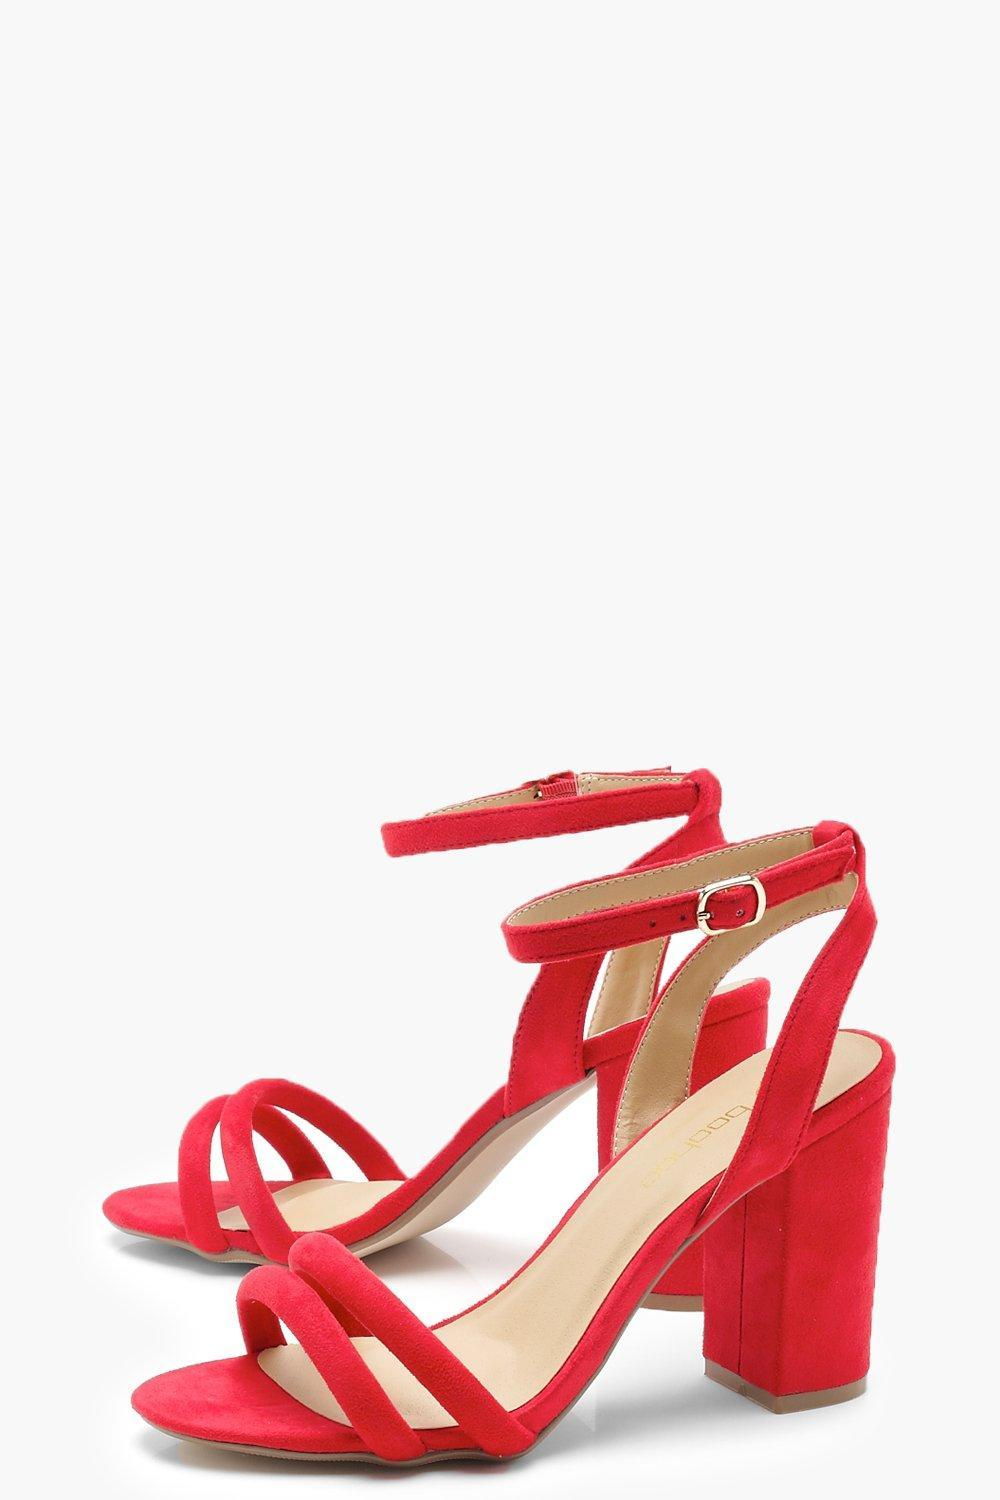 31c0292ade Lyst - Boohoo Double Band Ankle Strap Heels in Red